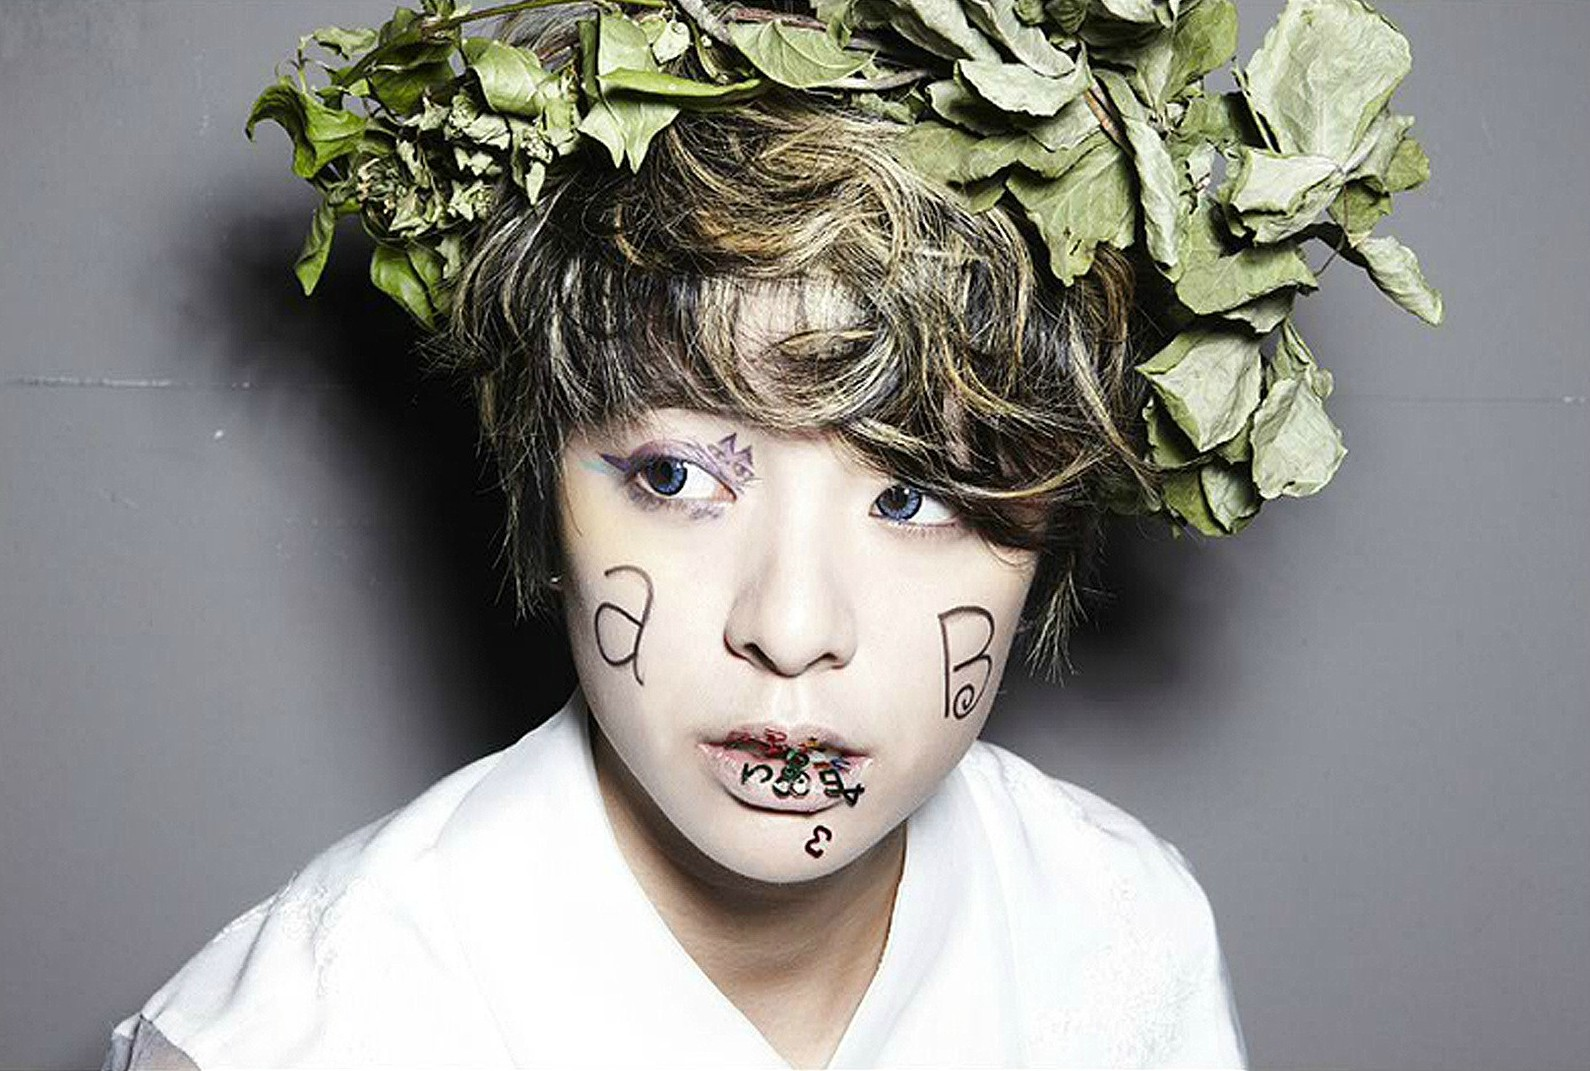 .:KPOP HOTLINE:.: F(x) Concept Photos for Electric Shock Album F(x) Electric Shock Amber